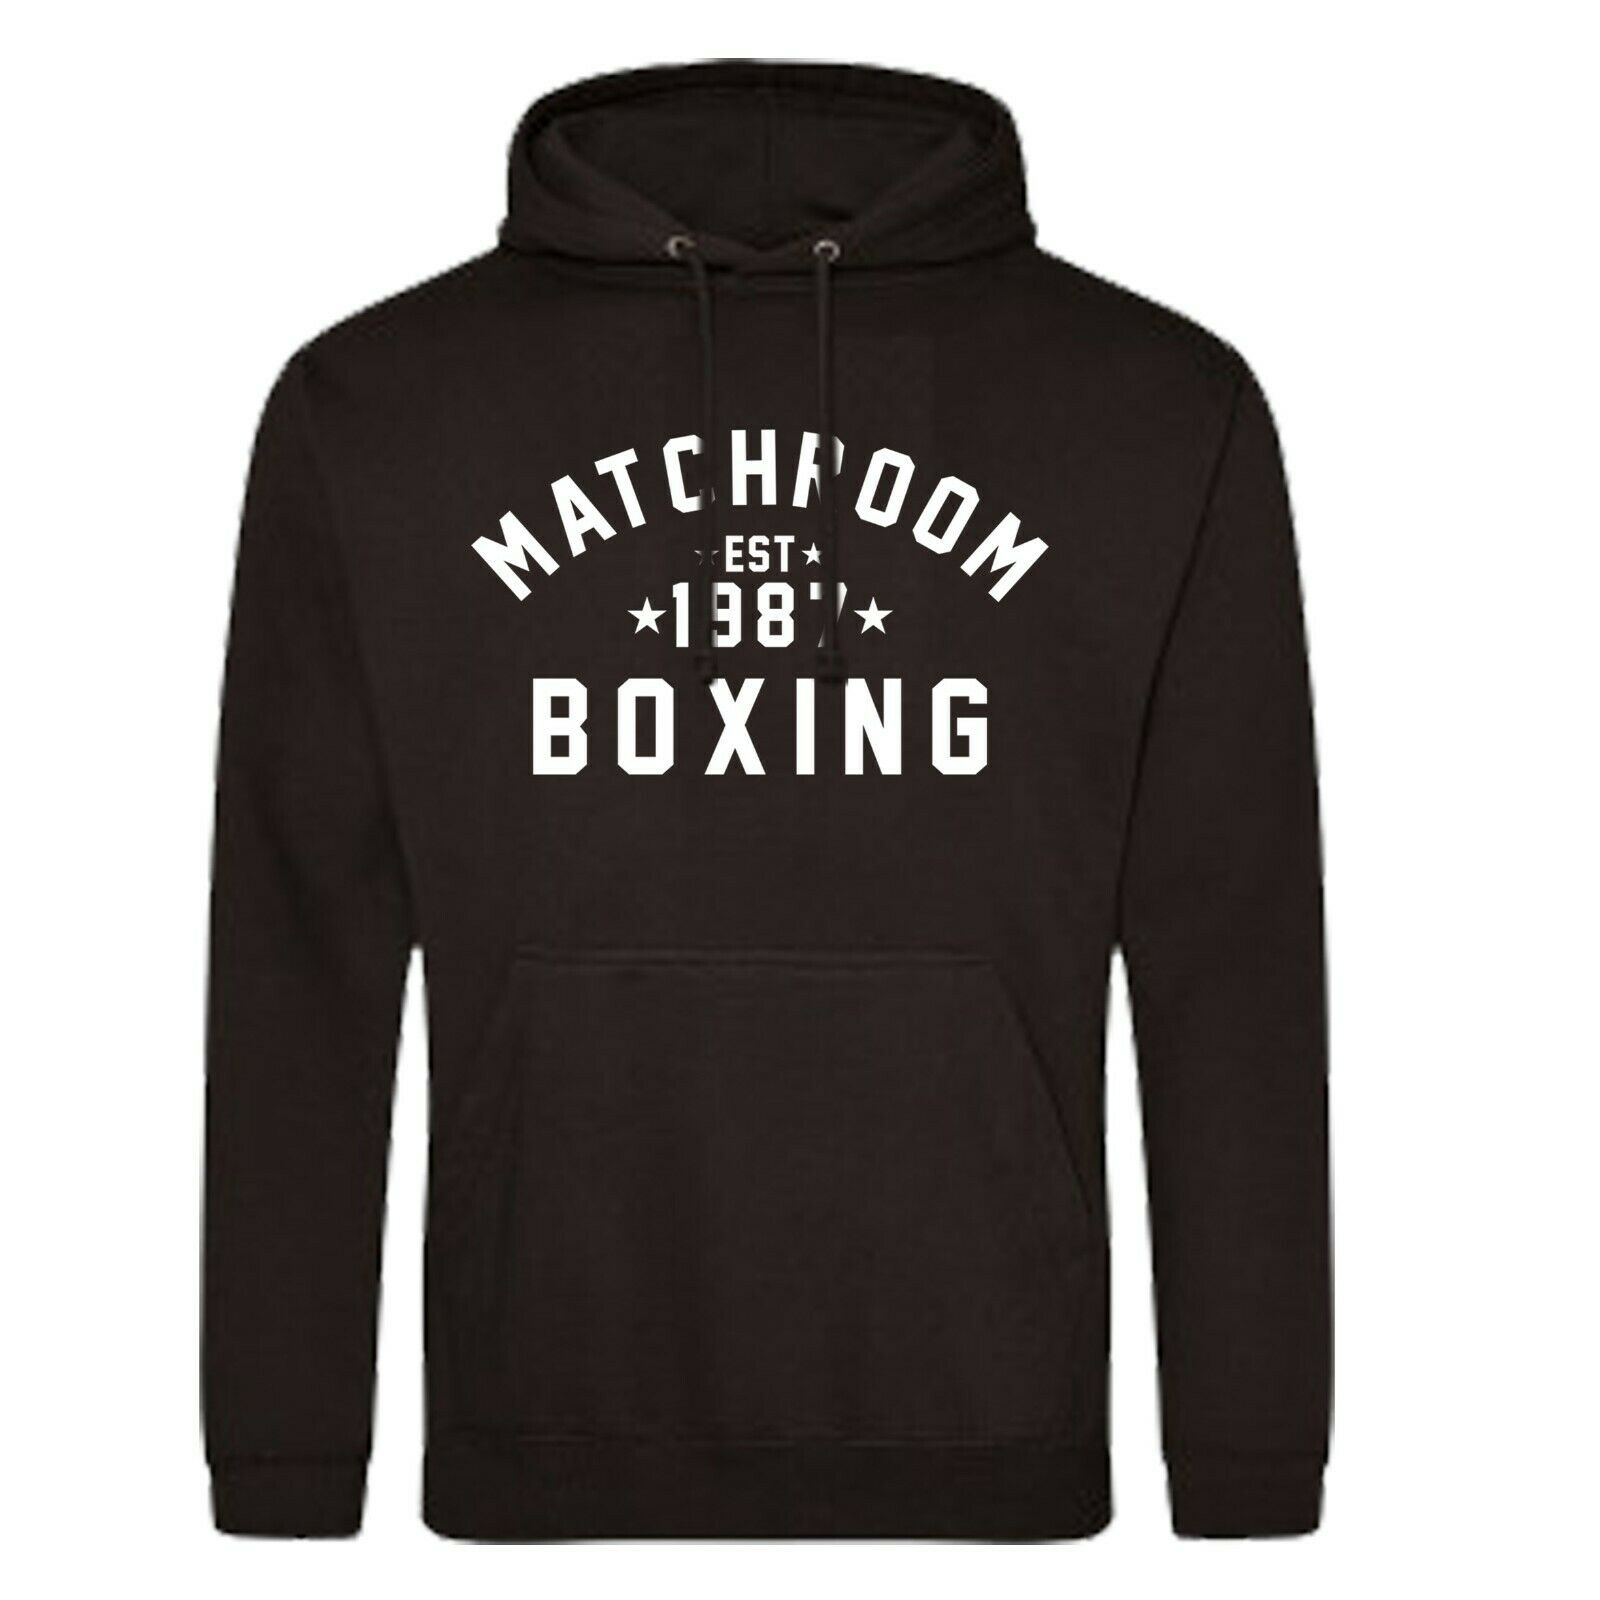 Matchroom Hoodie Black Sizes S M L XL 2XL Fast Delivery